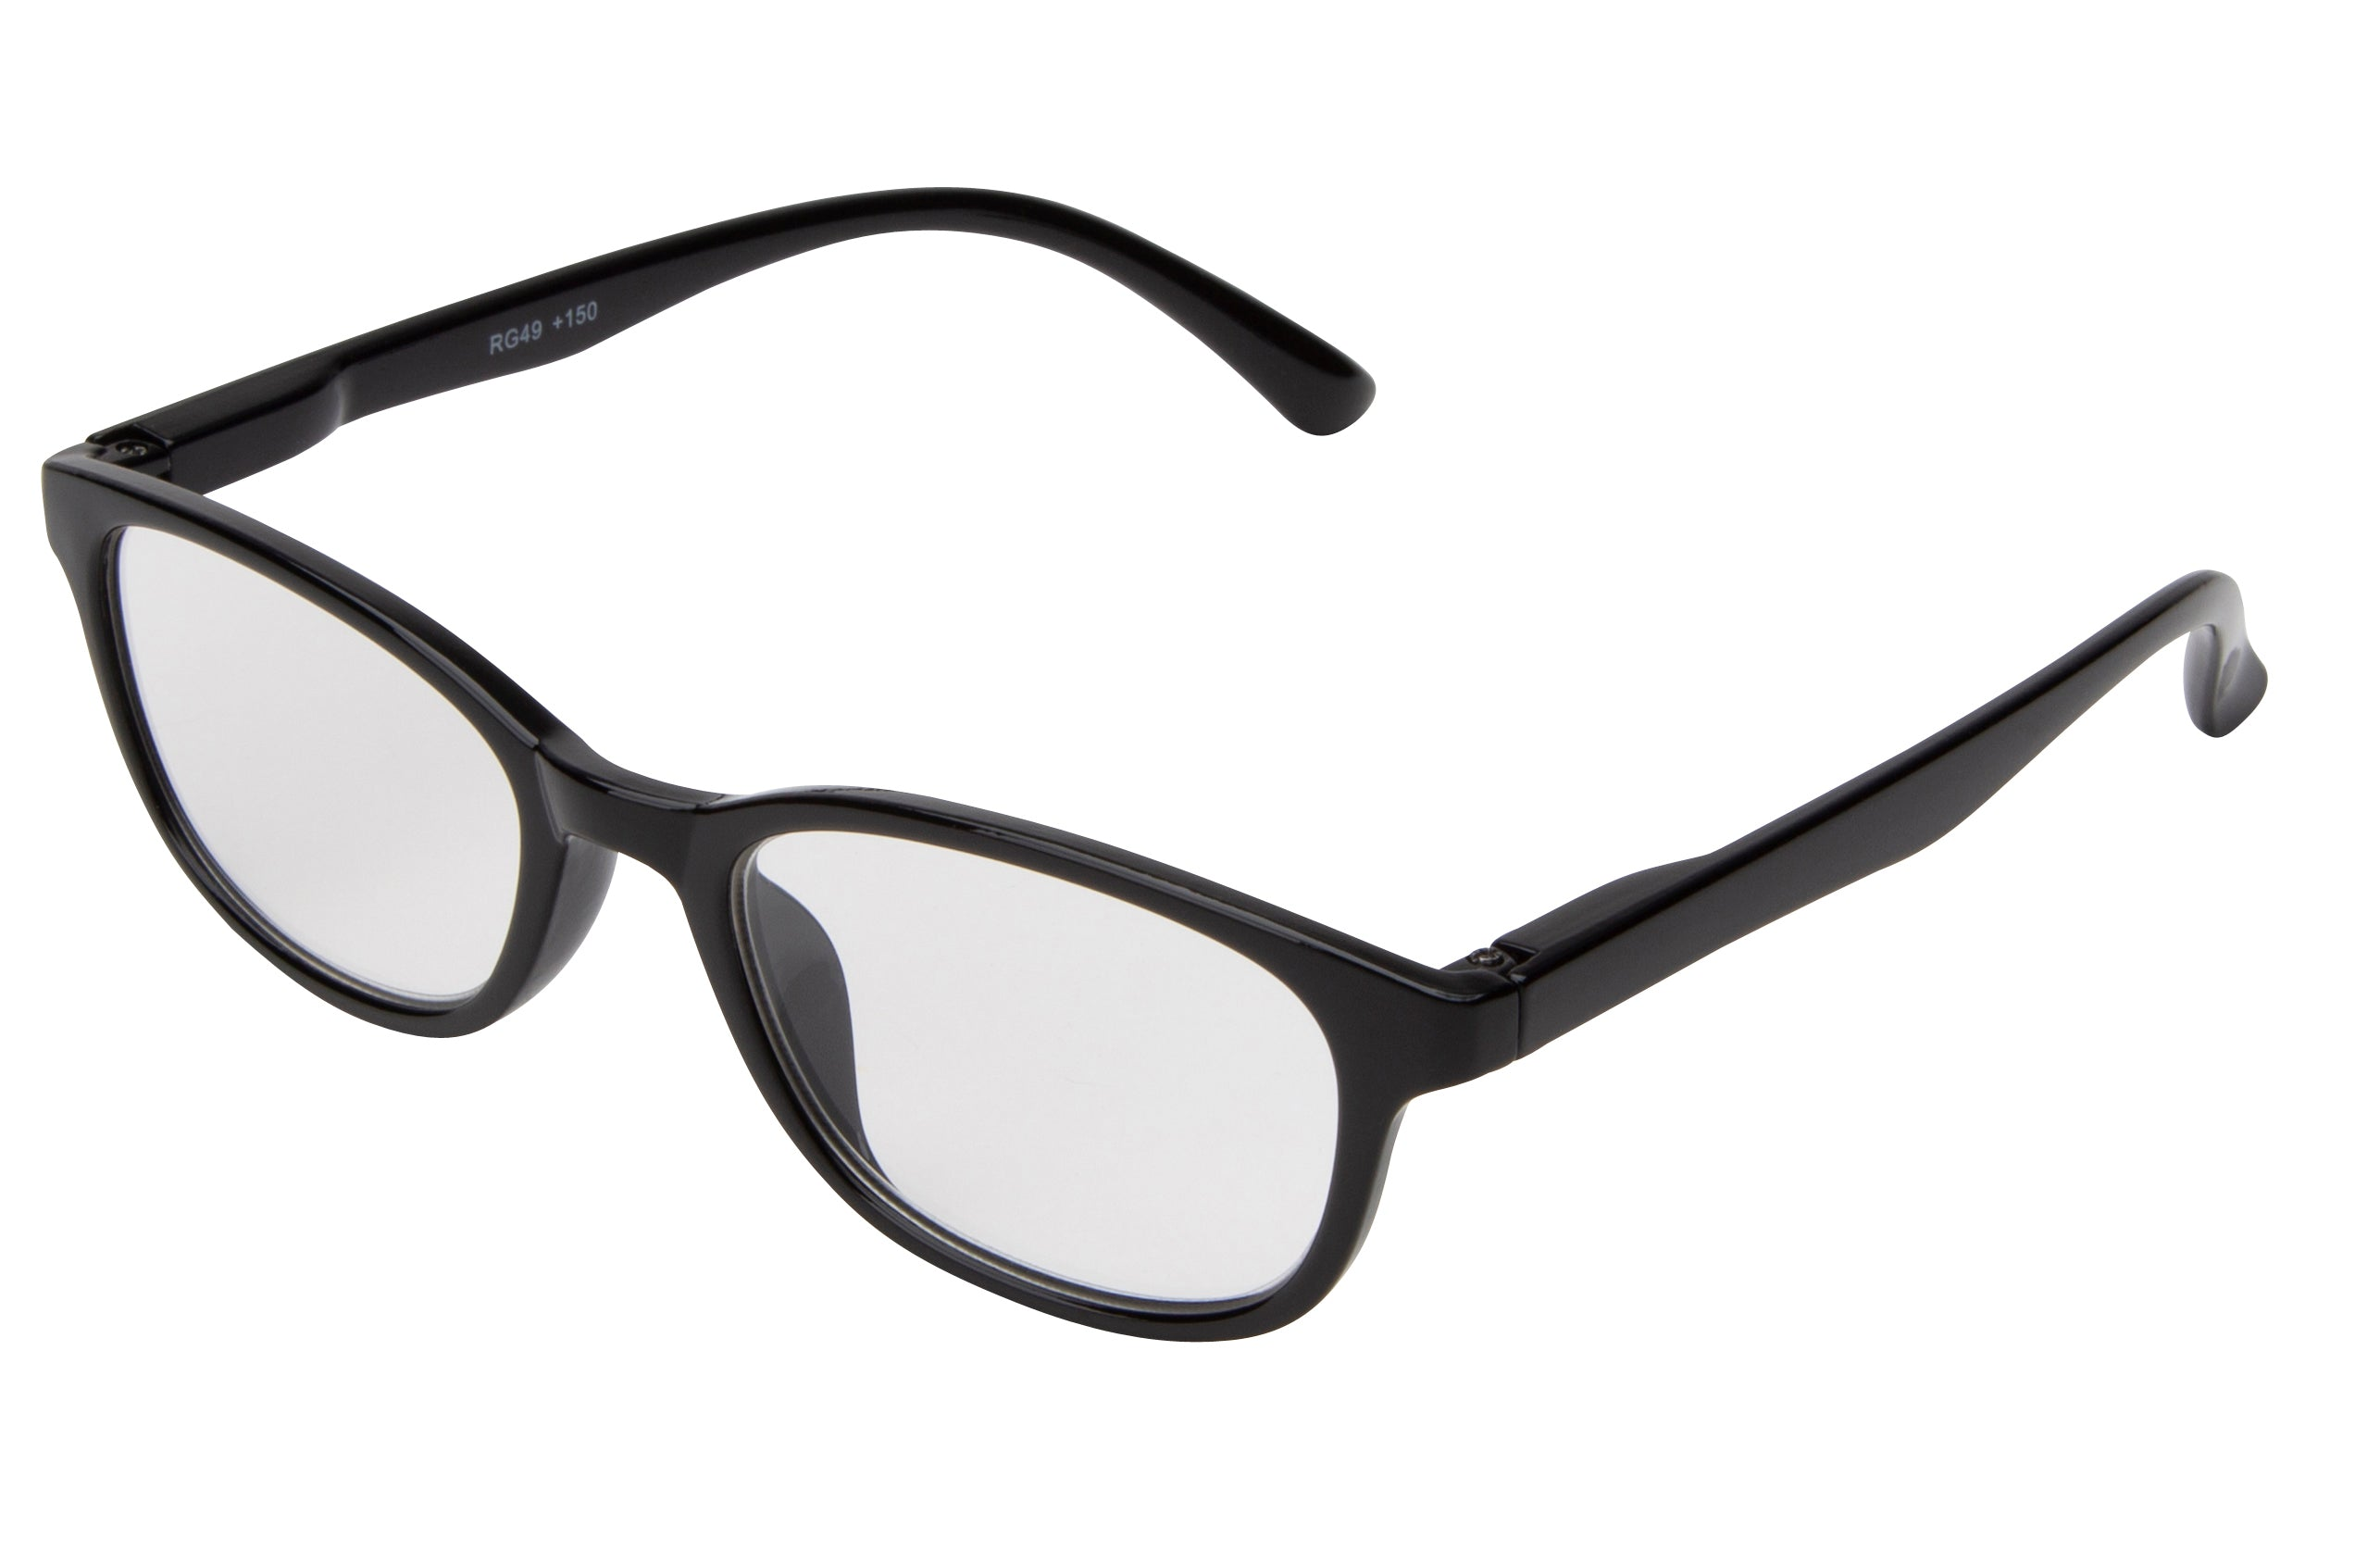 RG49 - Reading Glasses Assorted Powers